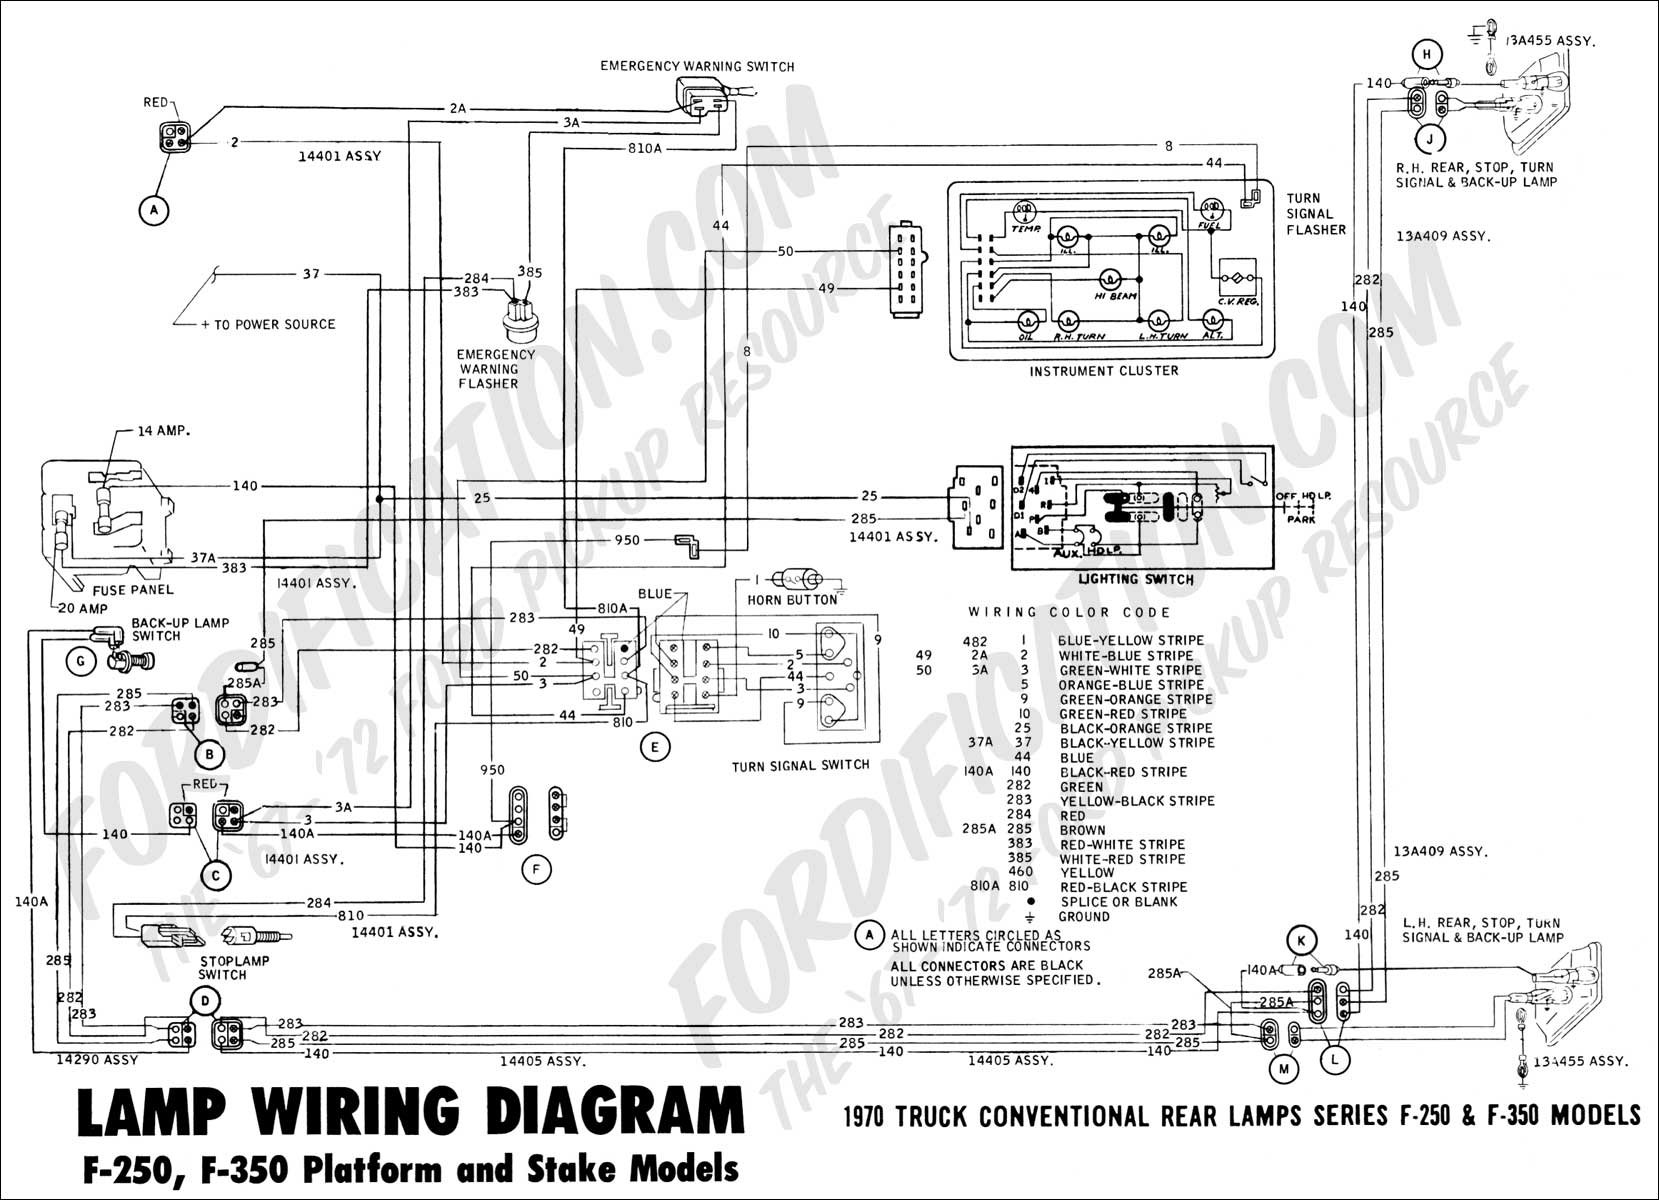 ford truck technical drawings and schematics section h wiring Nissan Versa Headlight Switch Wiring Diagram 1970 f 250, f 350 platform stake rear lamp wiring 01